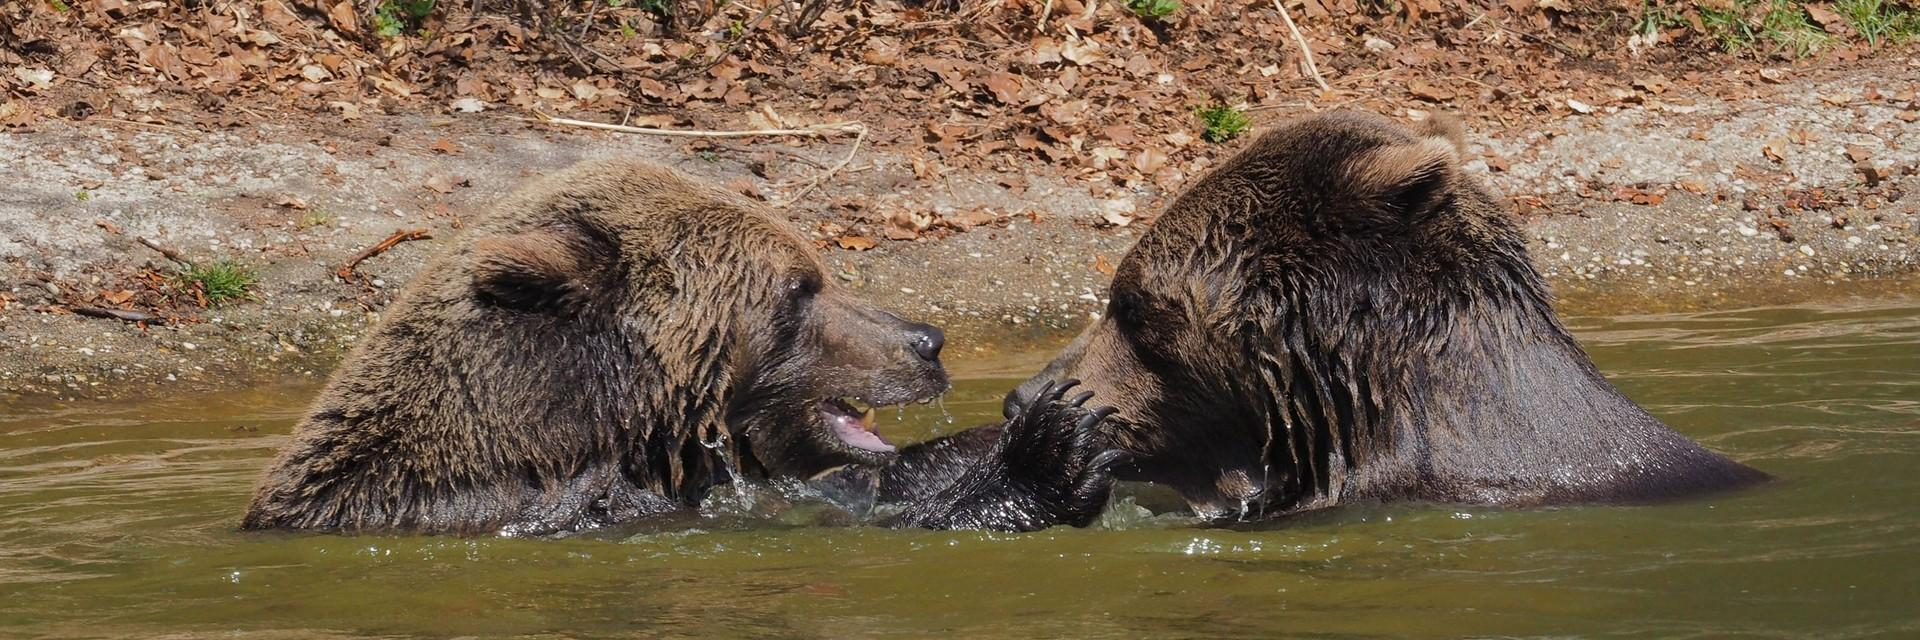 Bears Erich and Emma playing in the water